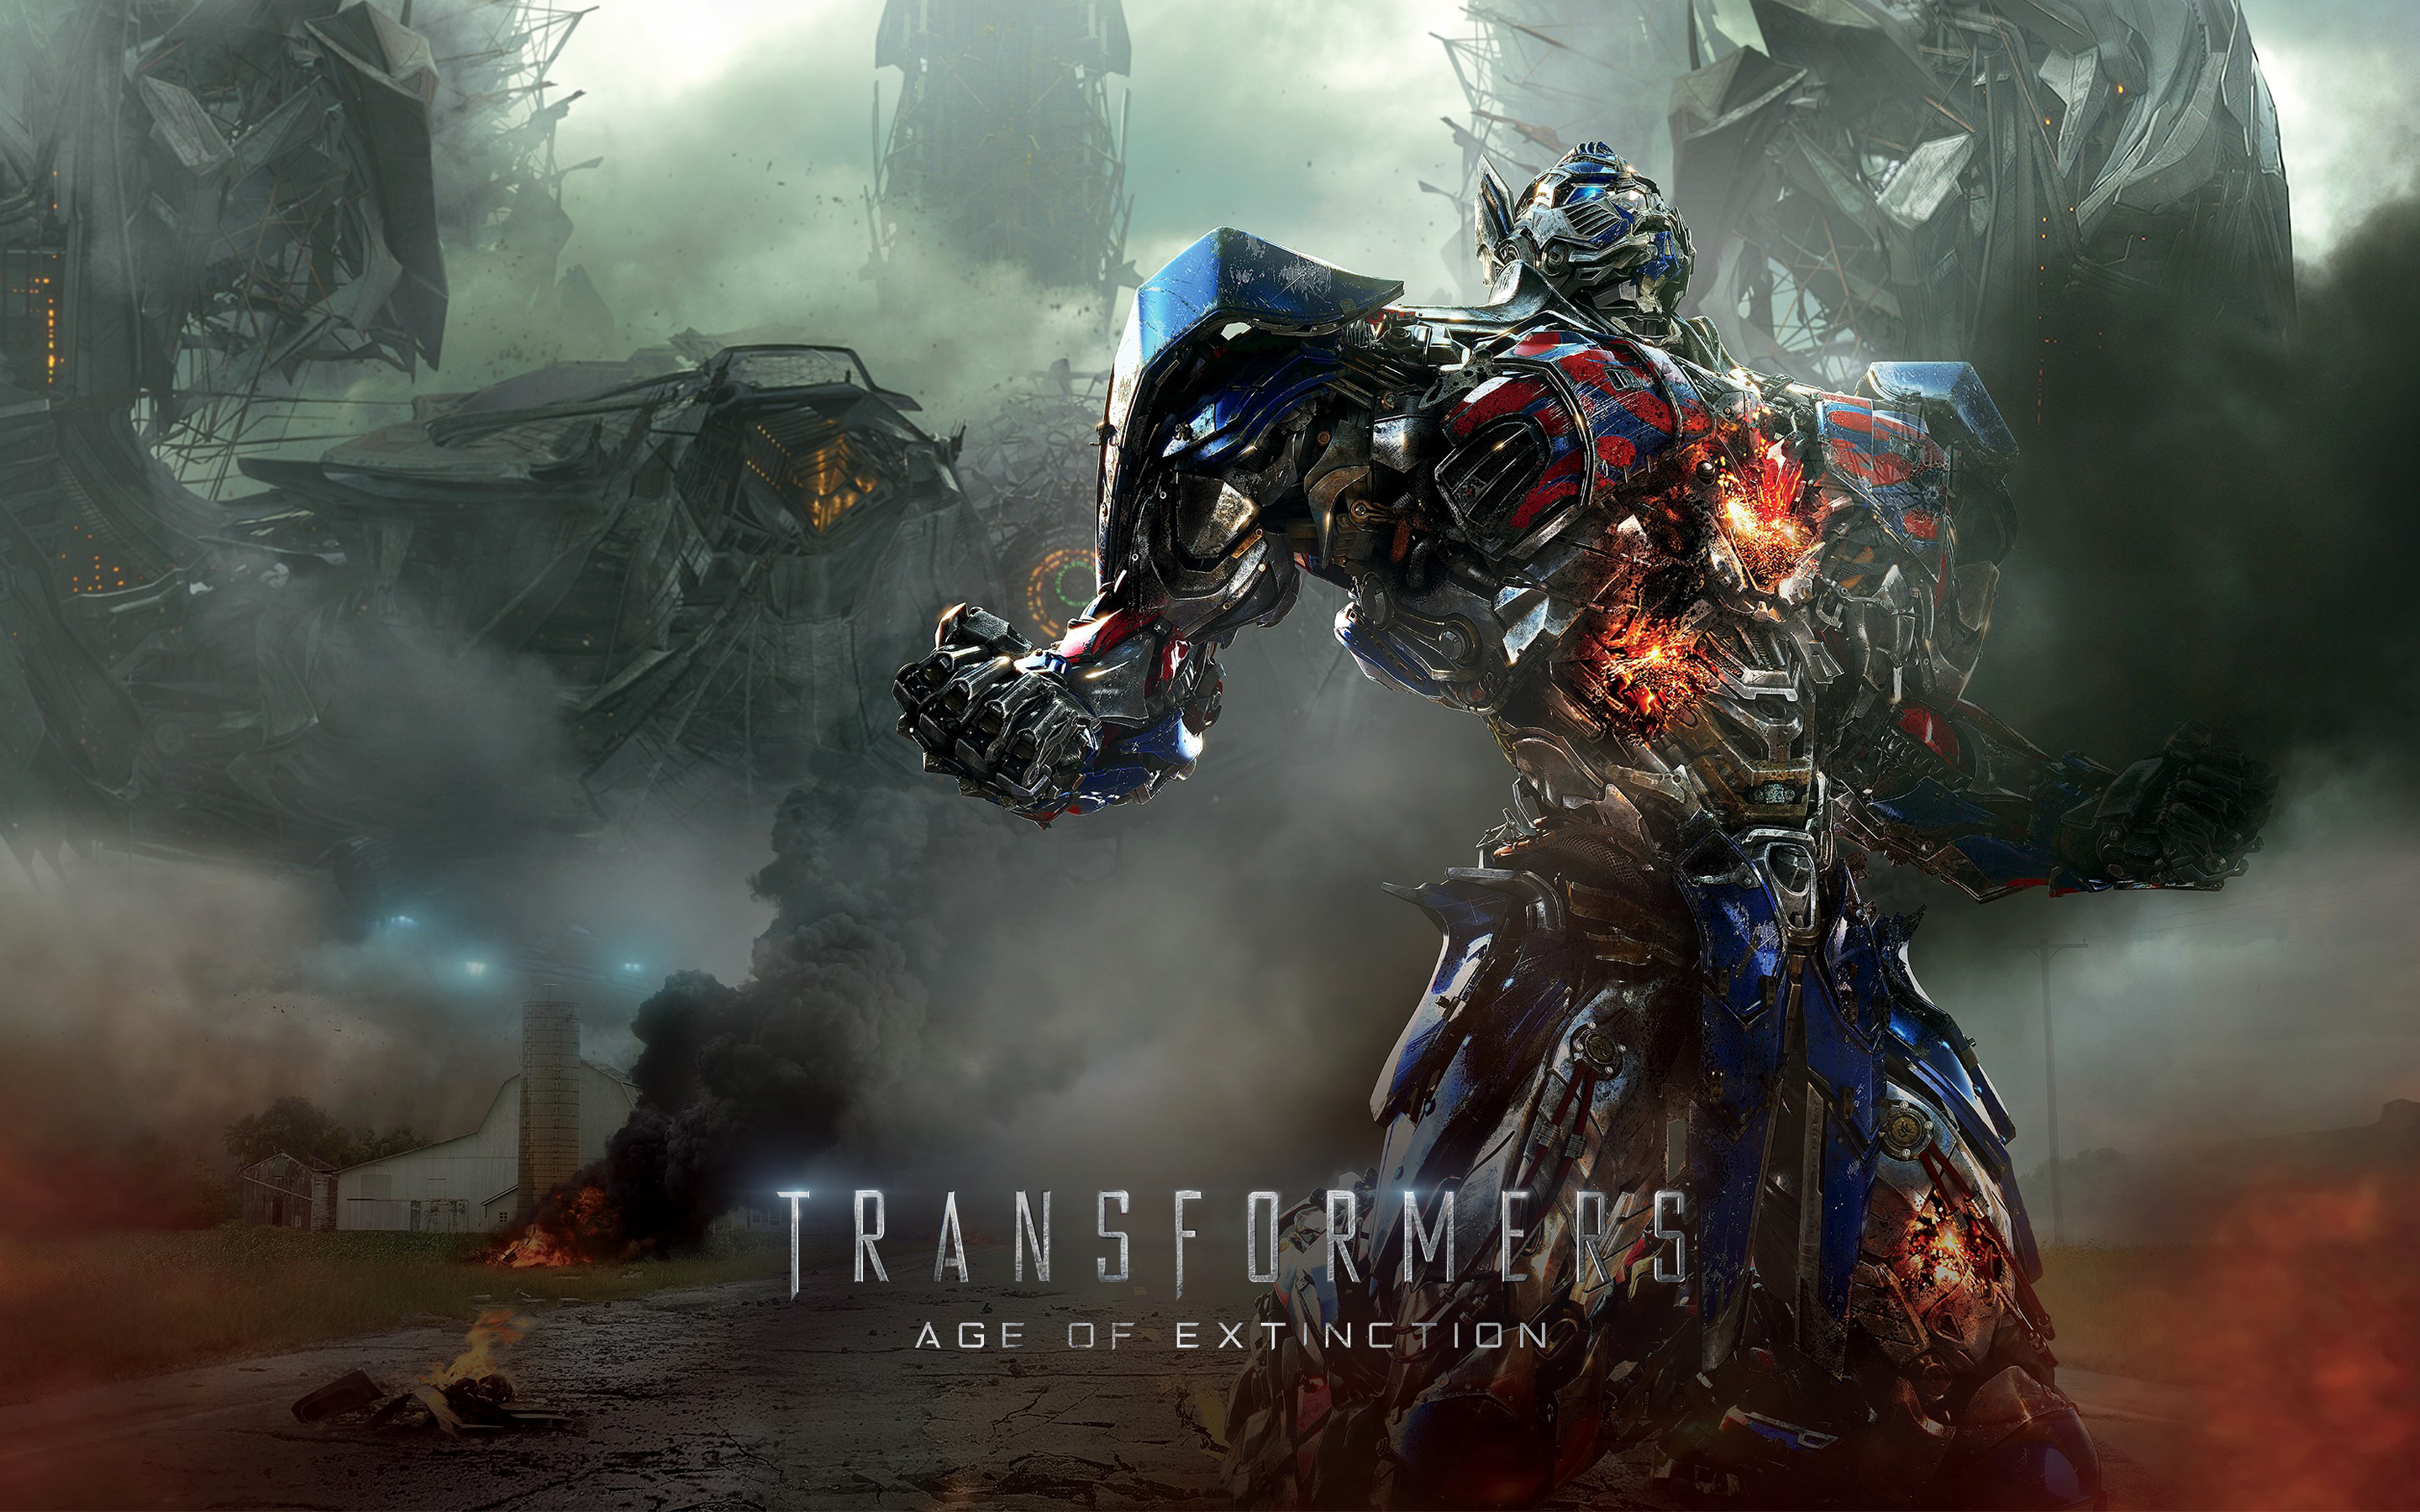 HD Wallpapers Transformers 4 Age of Extinction 2014